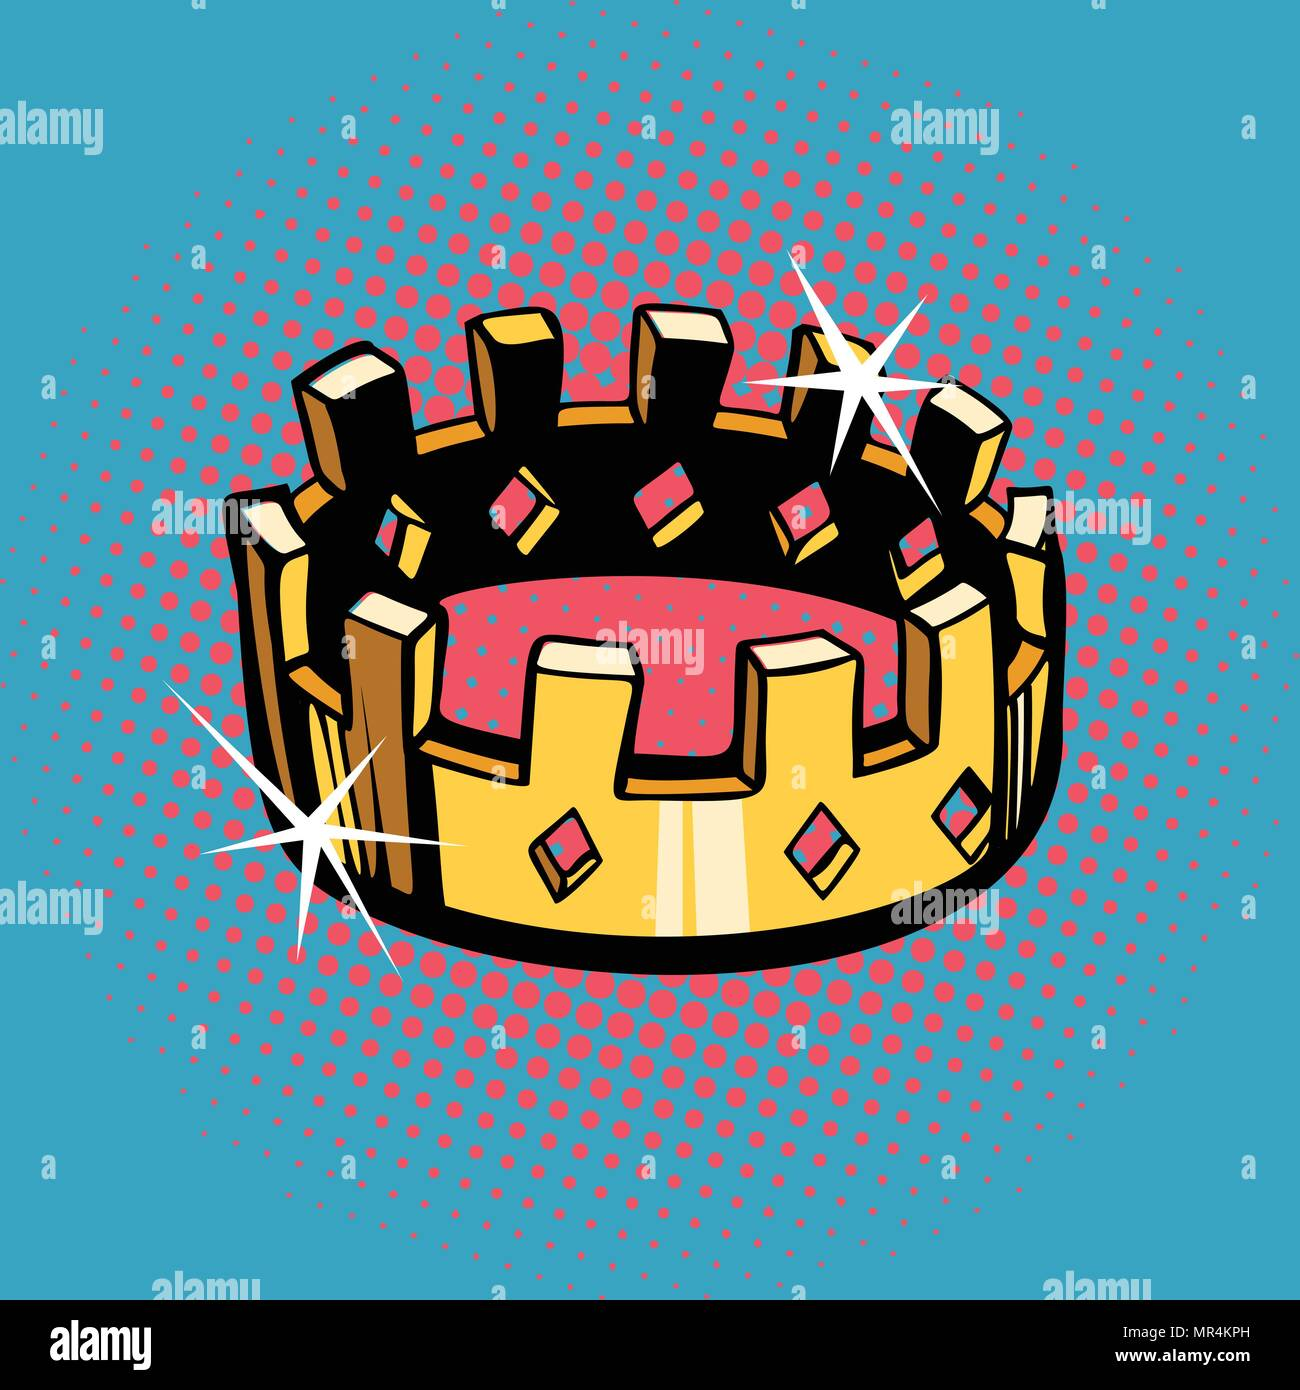 Golden crown, state power - Stock Image